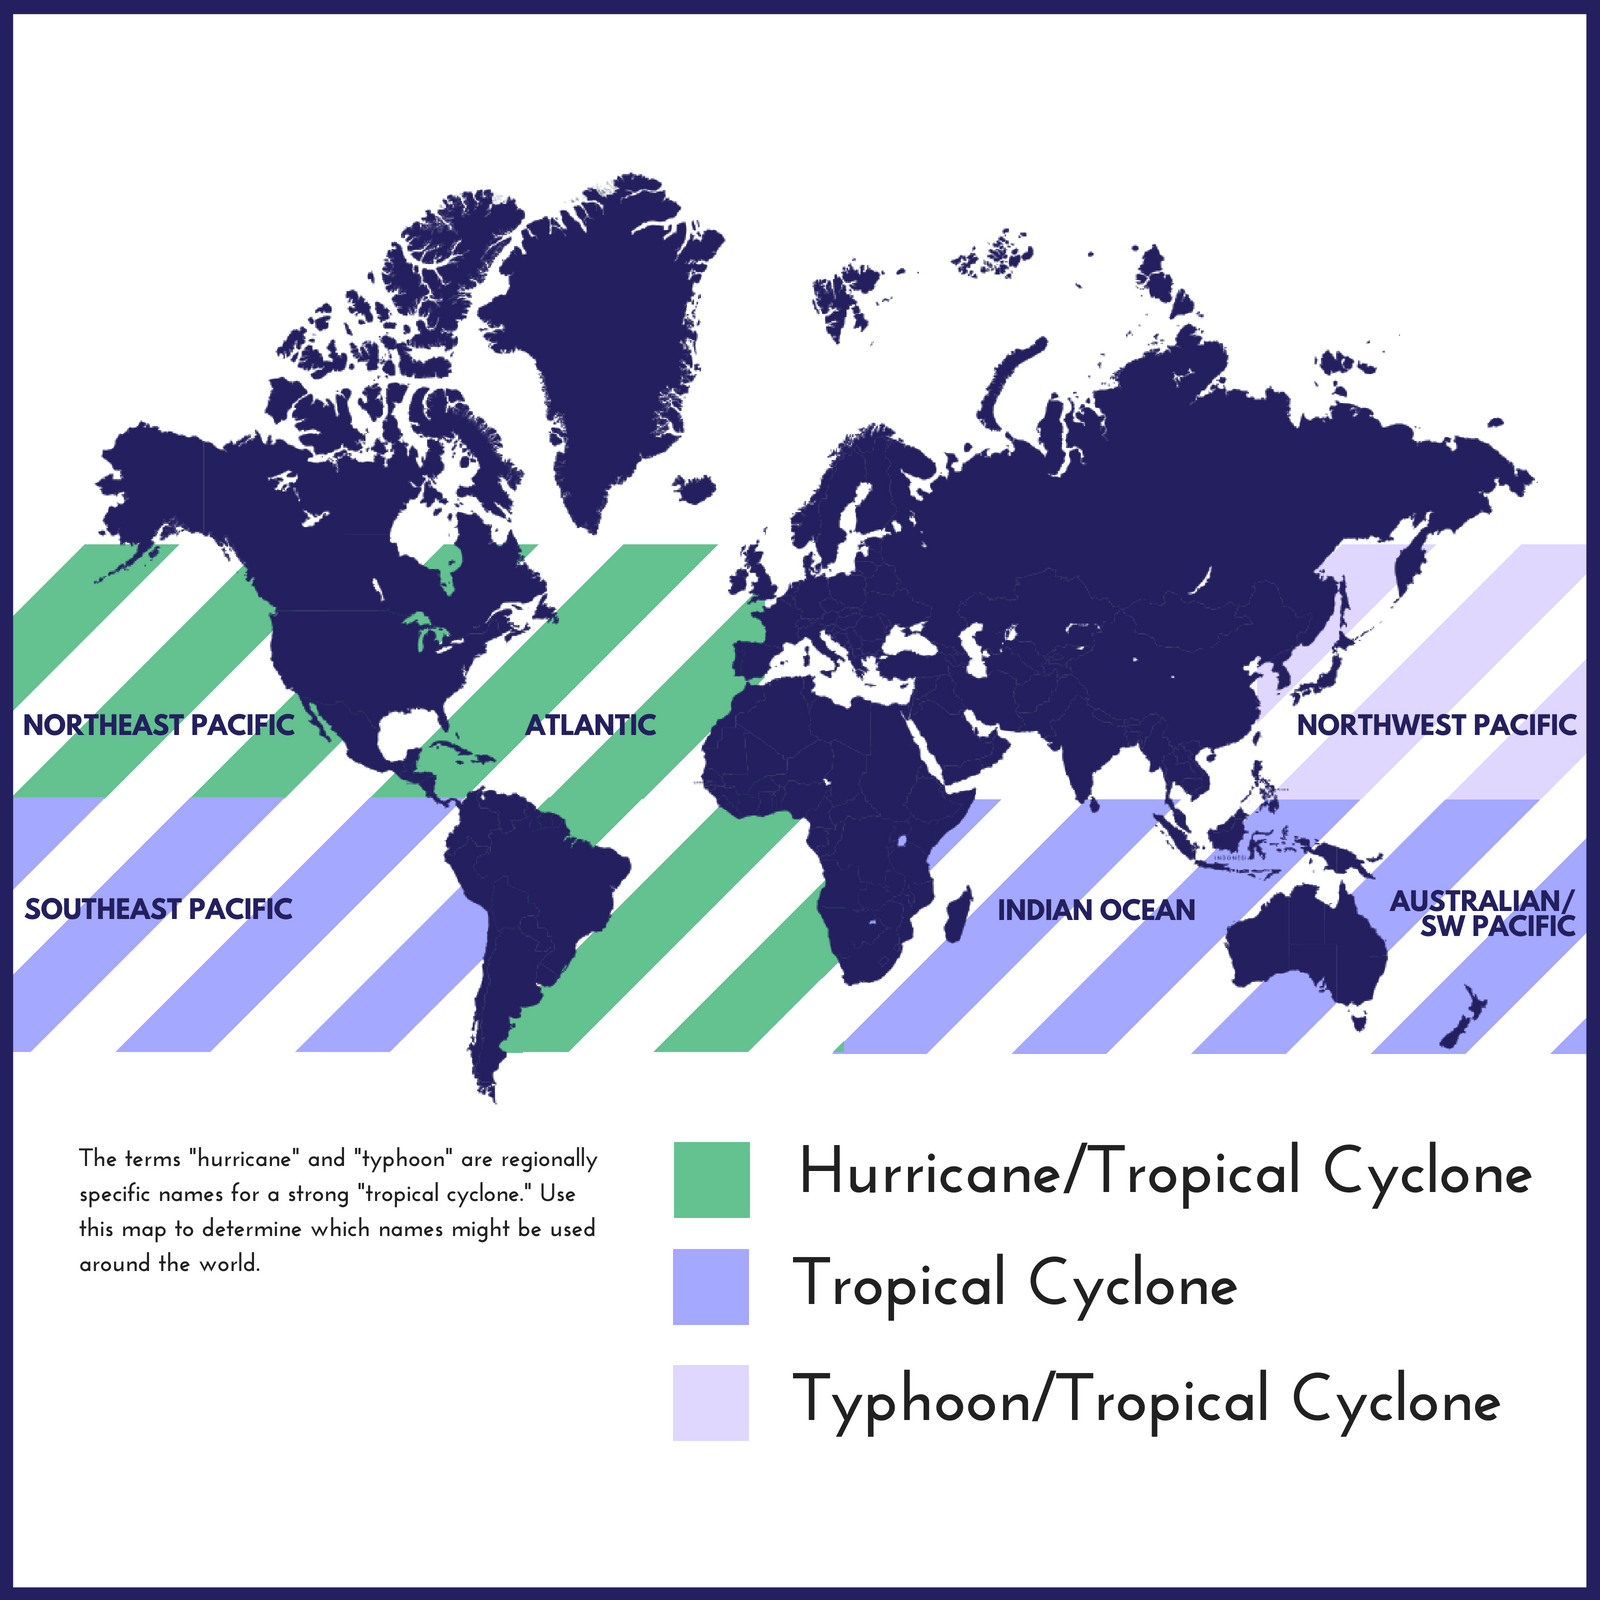 Hurricane season - world map showing which regions use the terms hurricane, tropical cyclone, and typhoon.